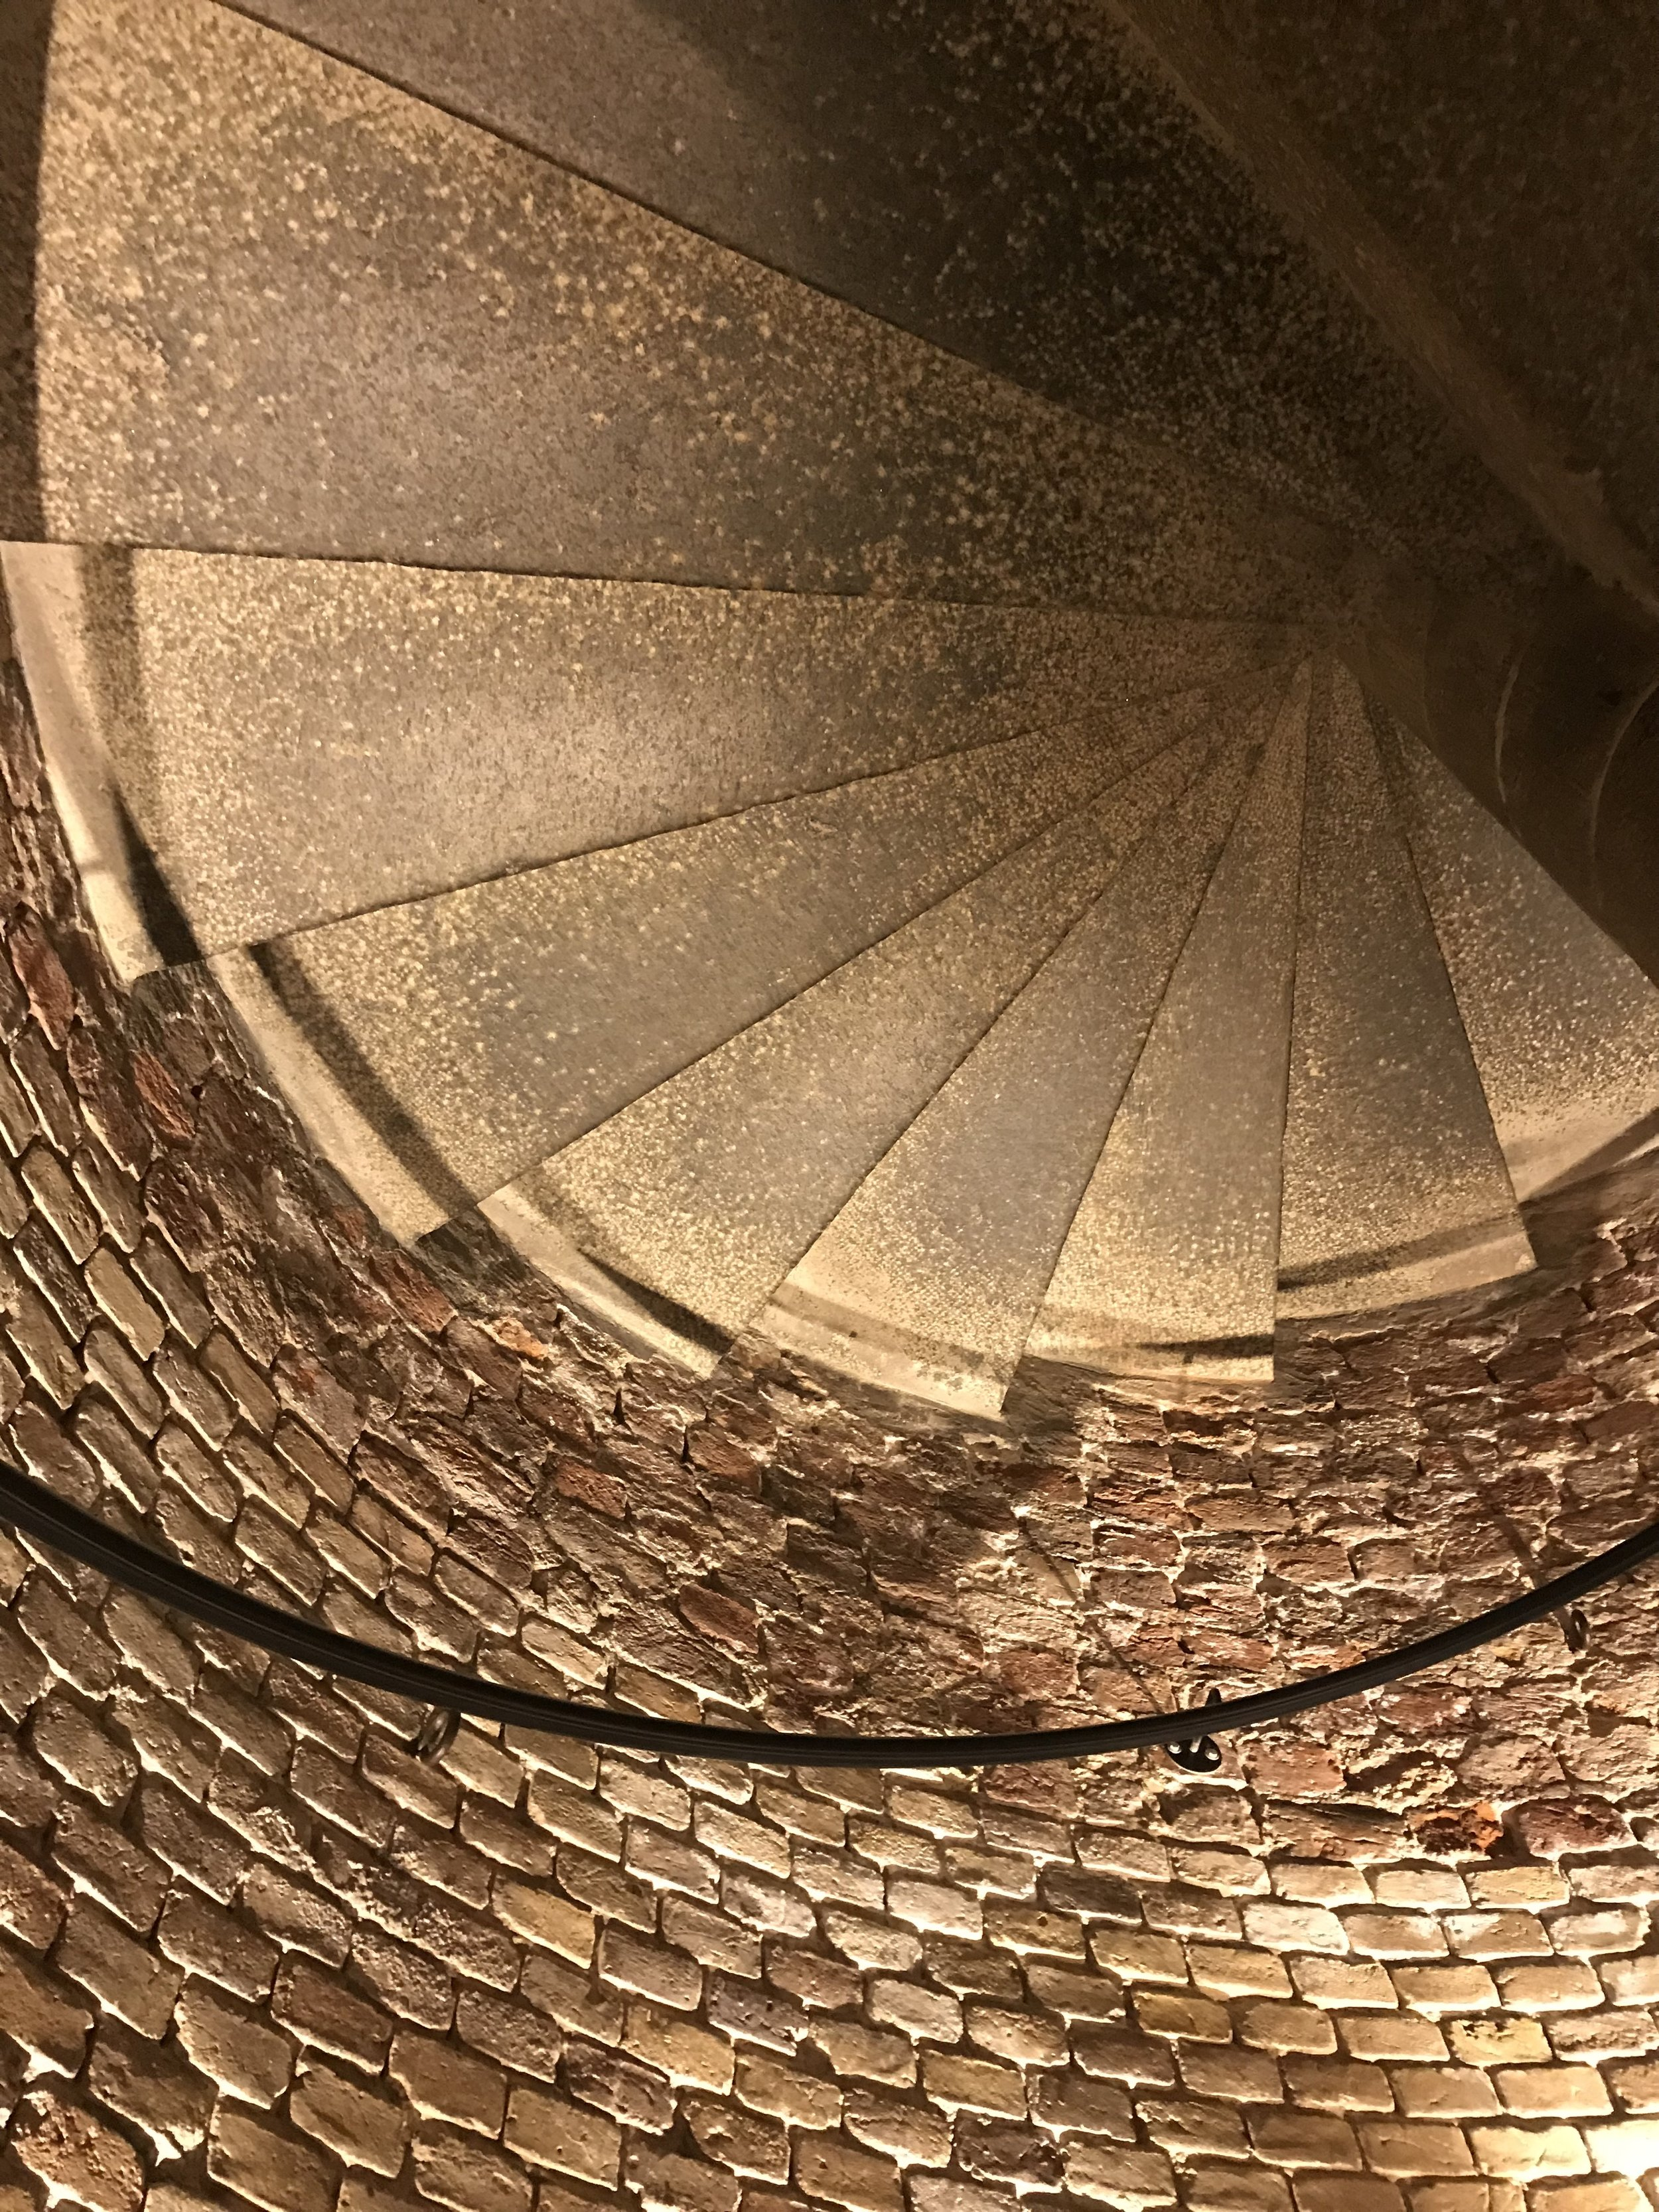 Stairway to heaven (Bell tower stairs, Viborg Cathedral)